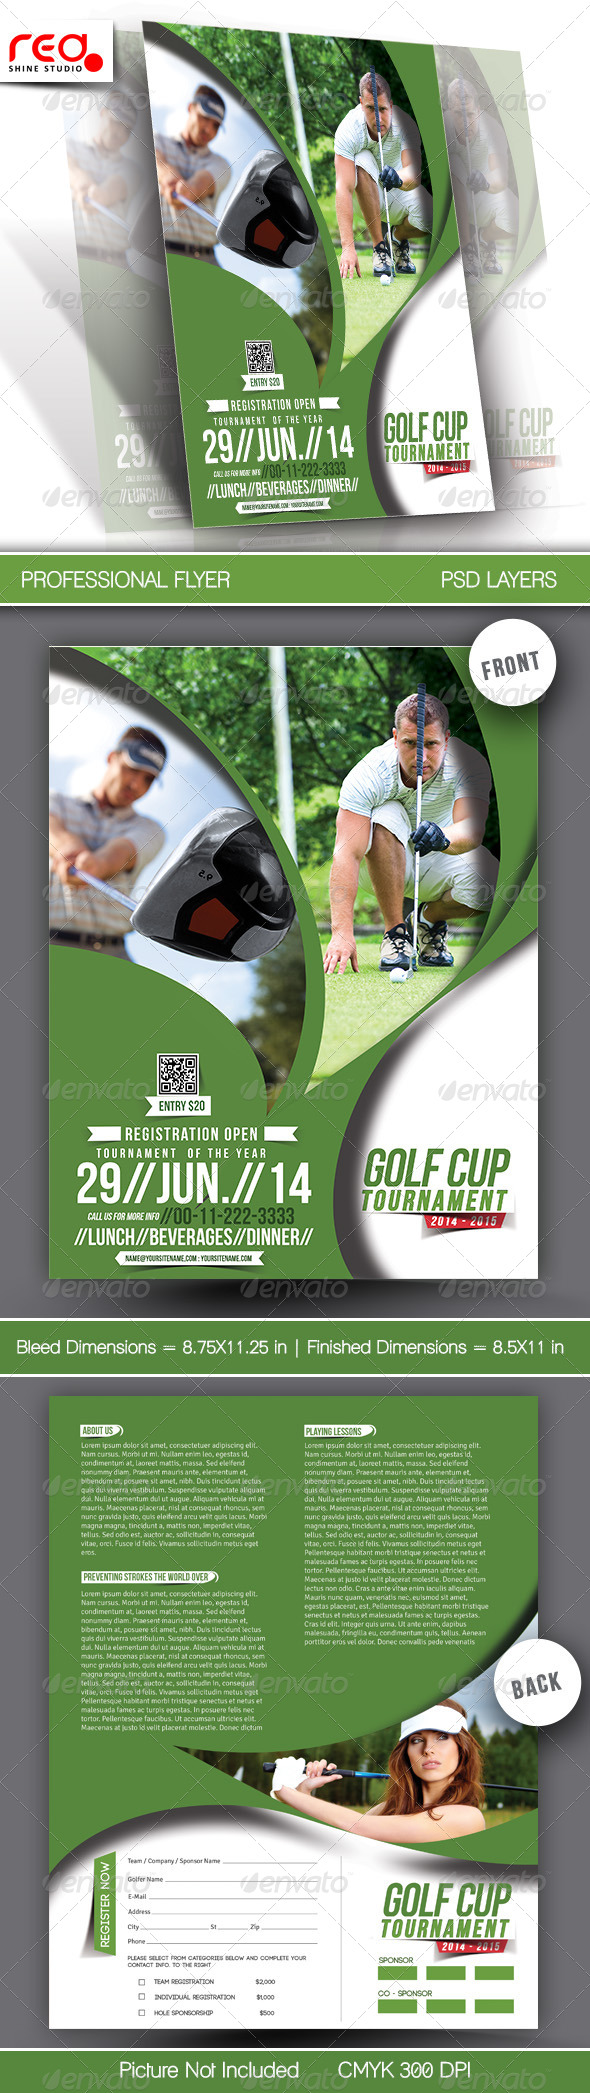 GraphicRiver Golf Cup Tournament Flyer Template 7506105